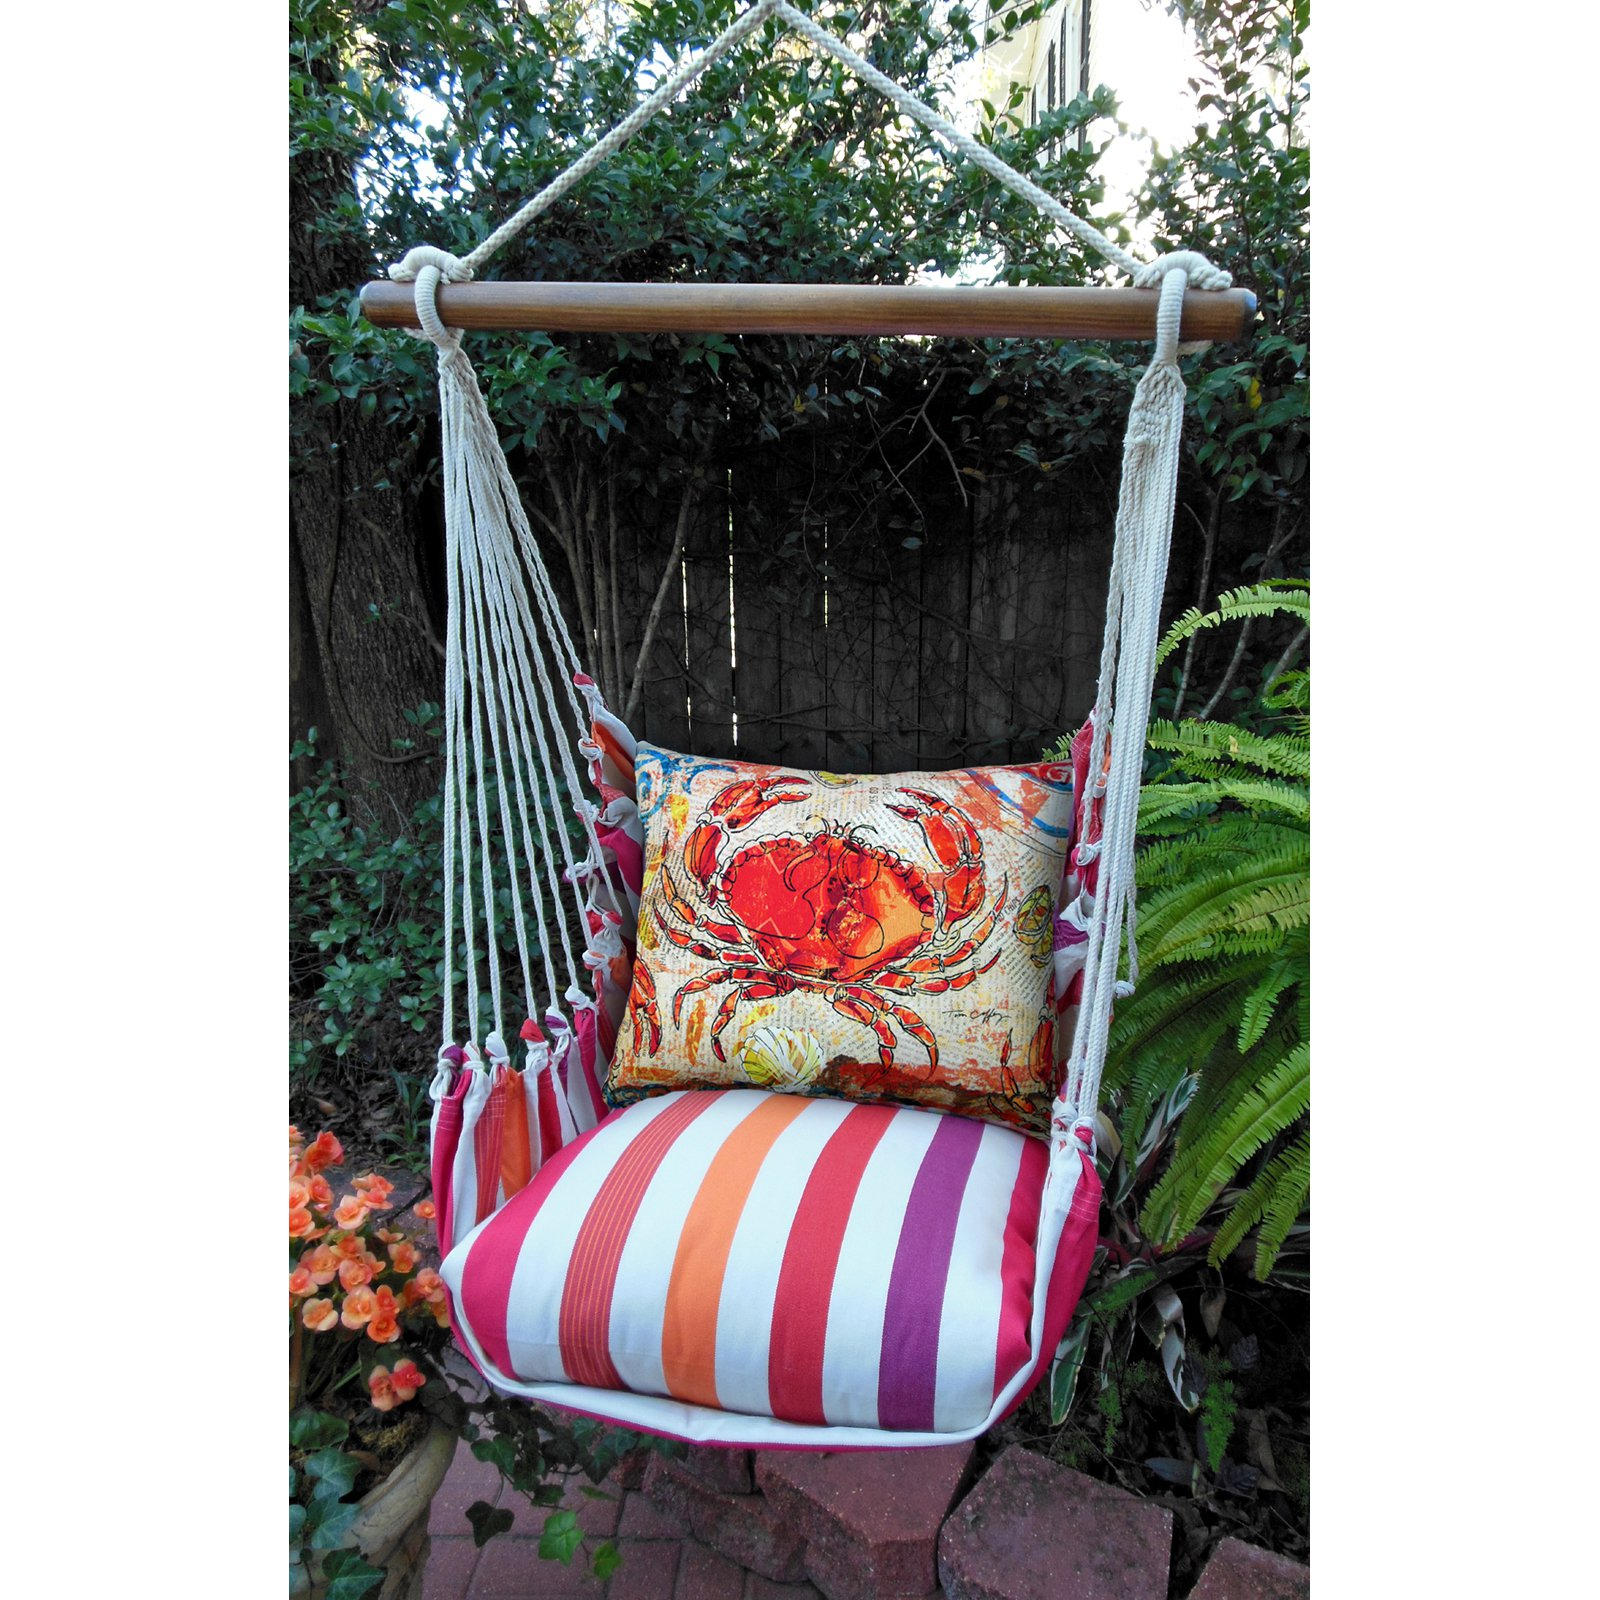 Magnolia Casual Crabby Hammock Chair & Pillow Set